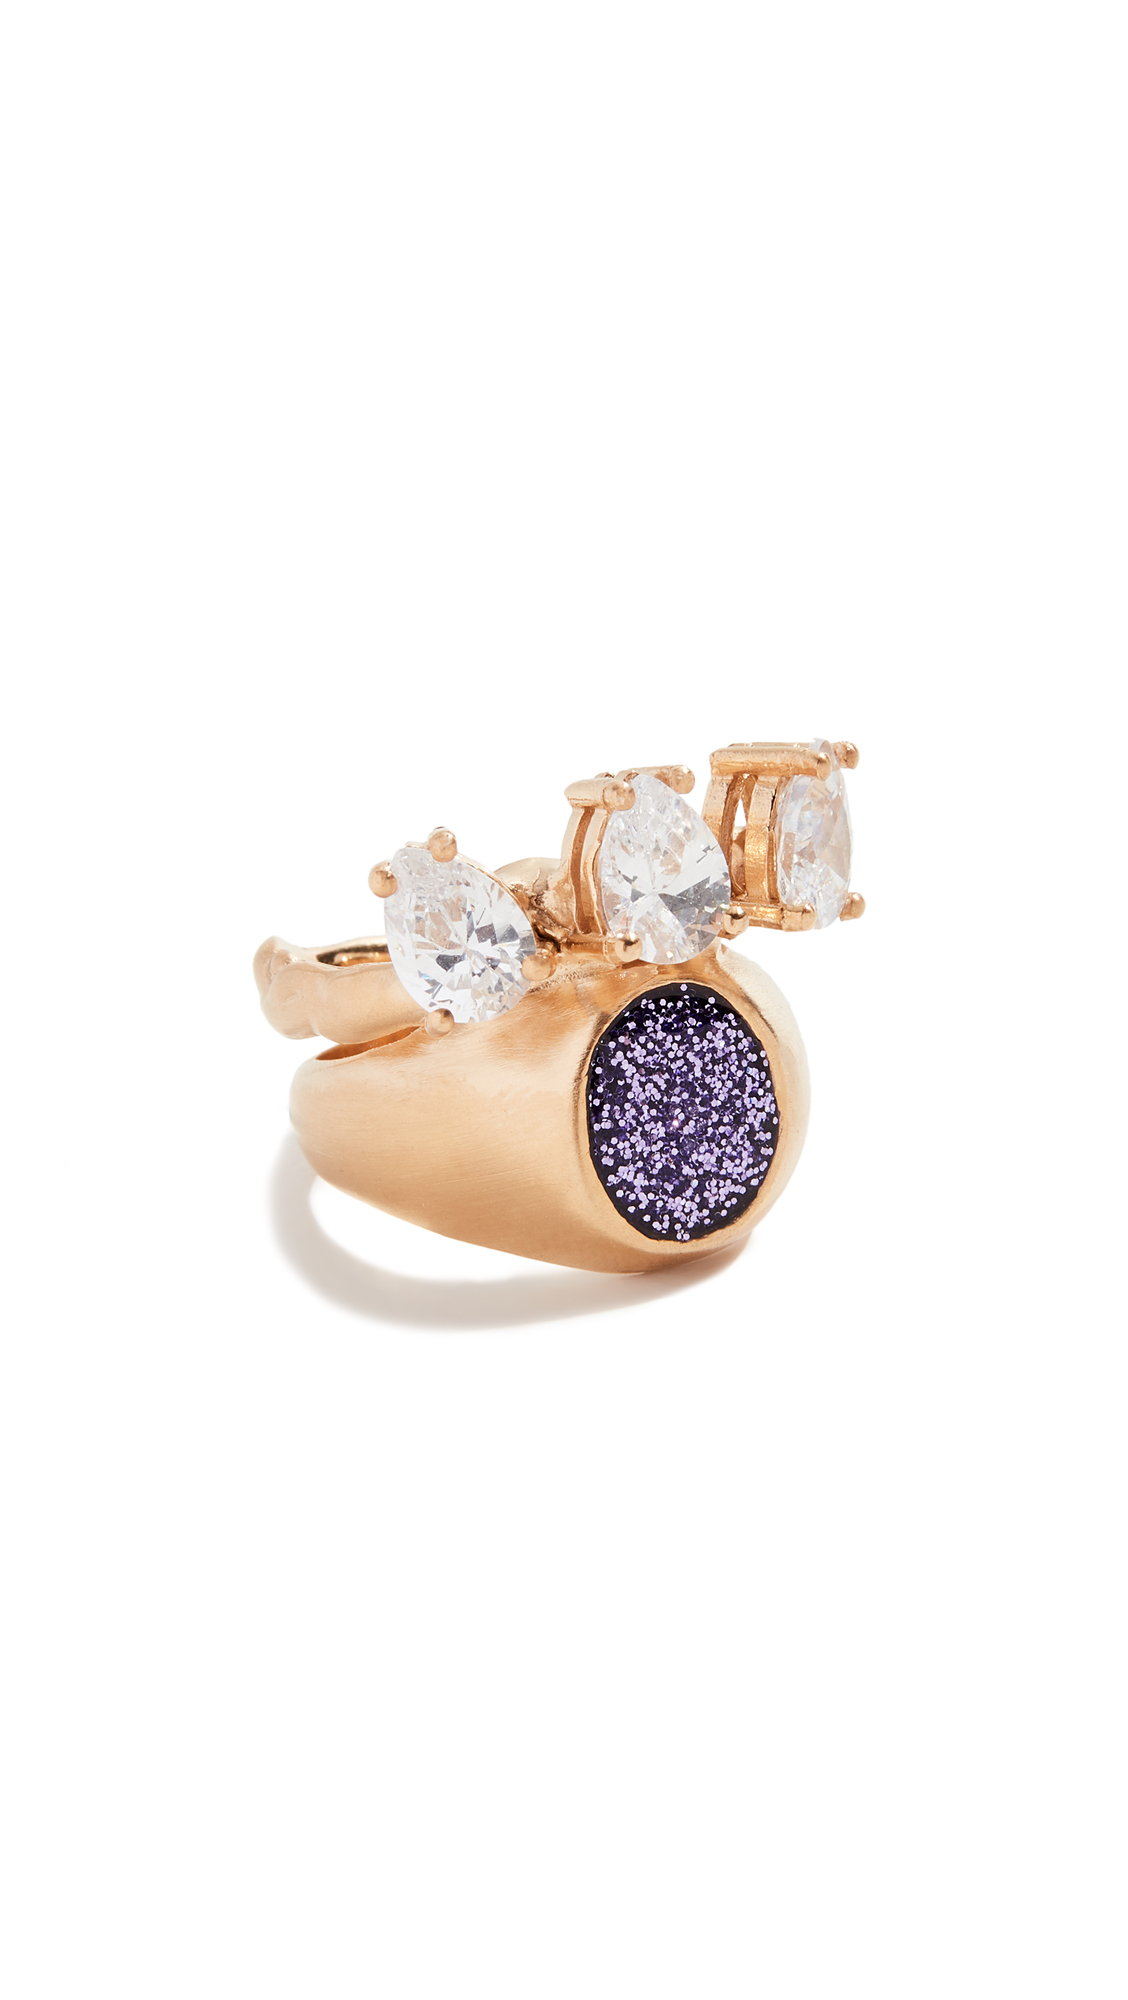 Voodoo Jewels Sigillum Ring with Three Stones - Purple